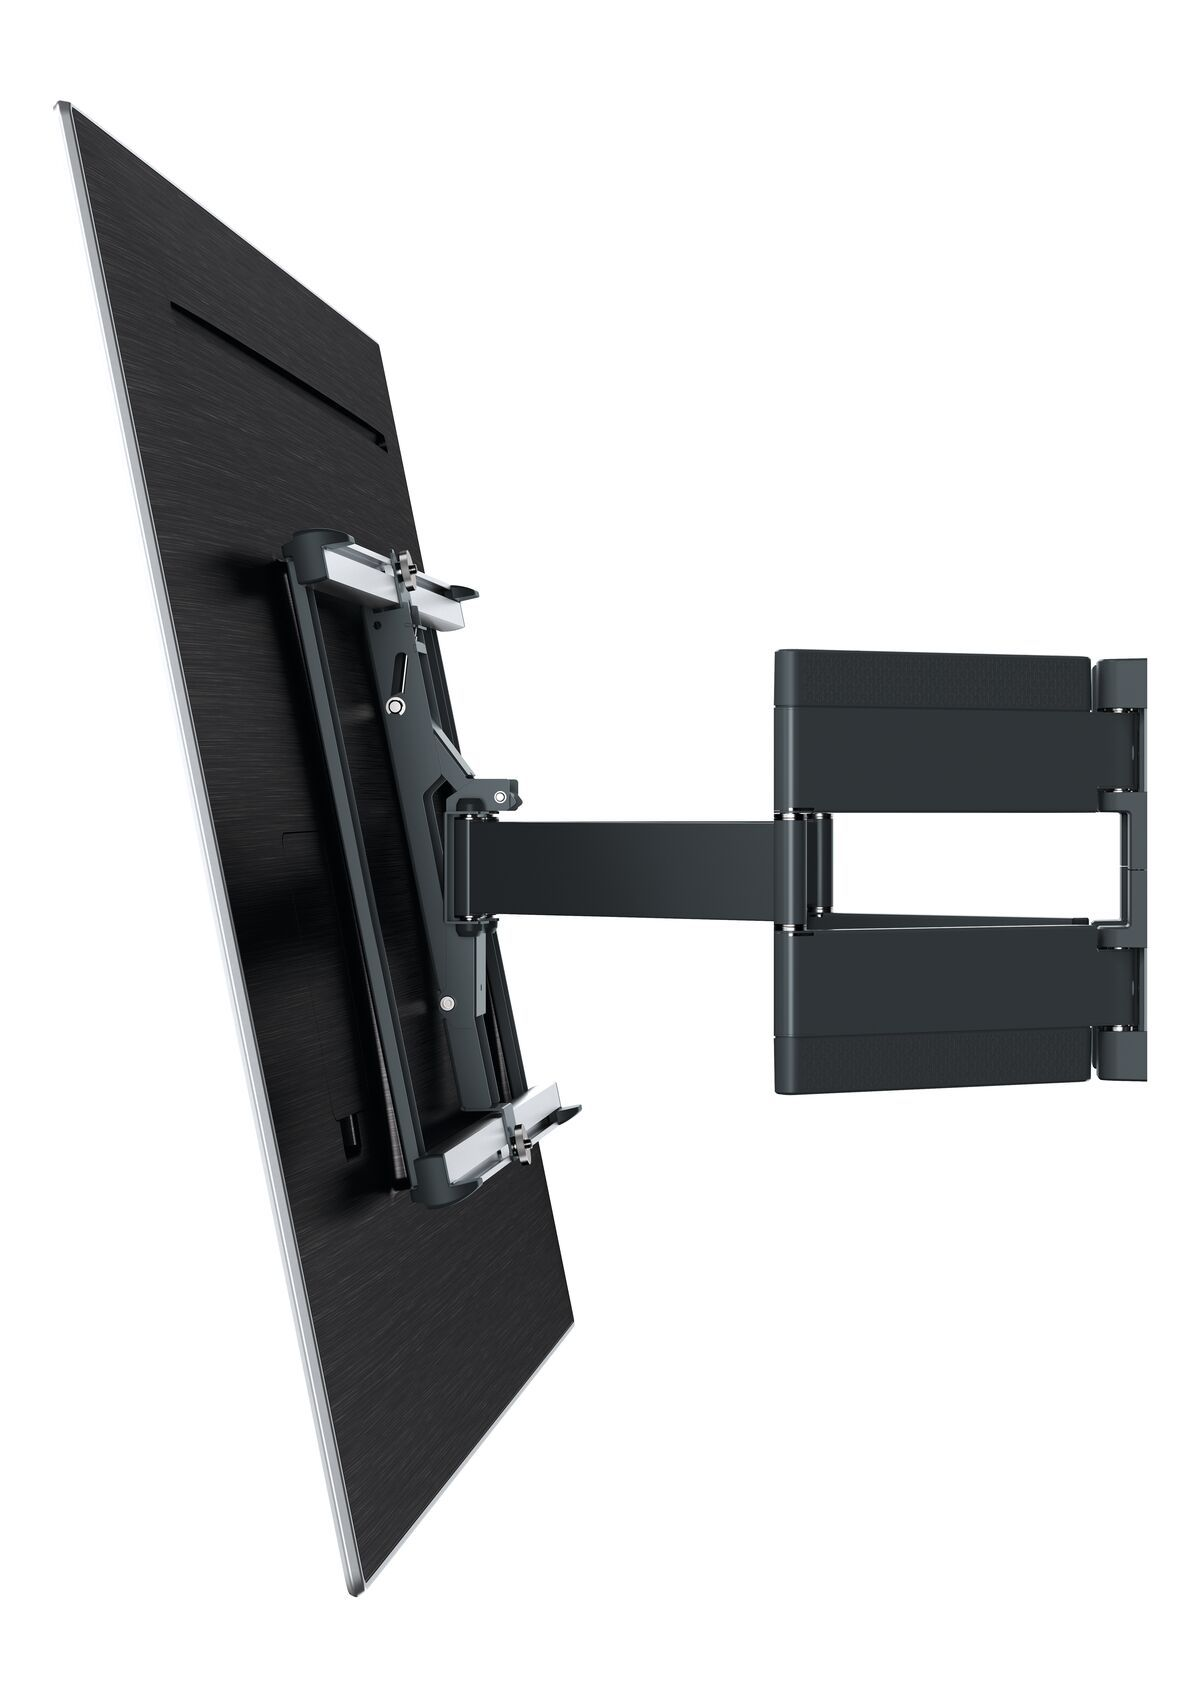 Vogel's THIN 550 ExtraThin Full-Motion TV Wall Mount - Suitable for 40 up to 100 inch TVs - Forward and turning motion (up to 120°) - Tilt up to 20° - Application